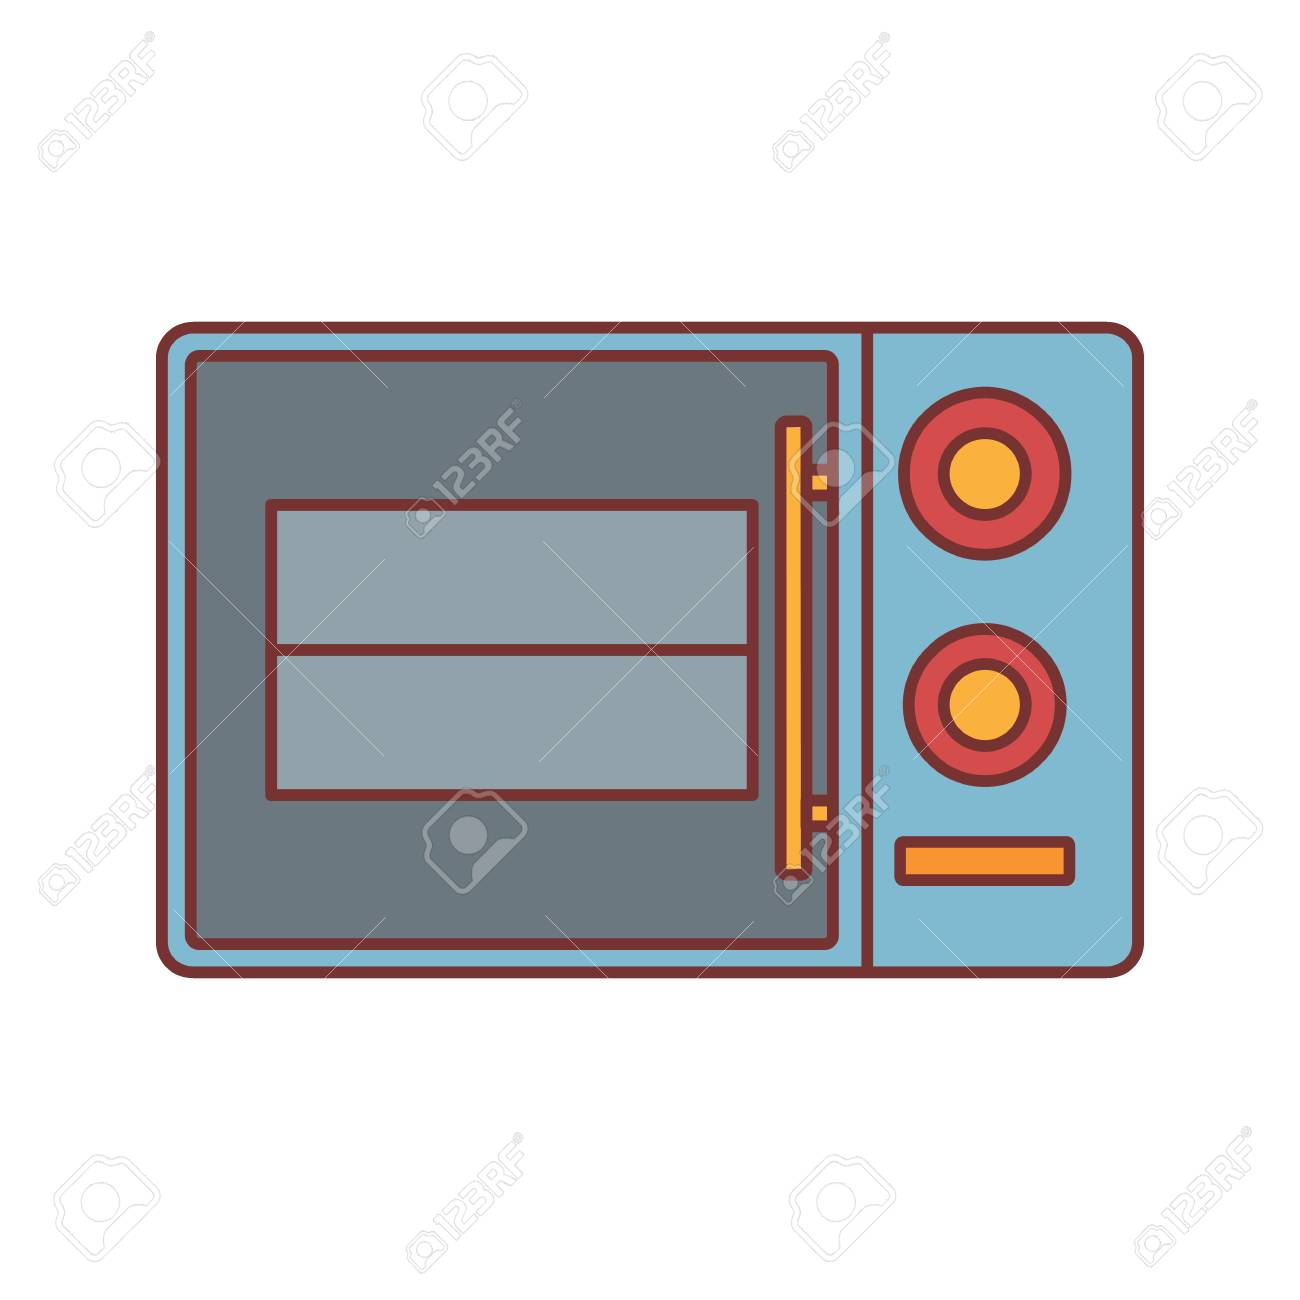 microwave oven cartoon icon vector illustration for design and